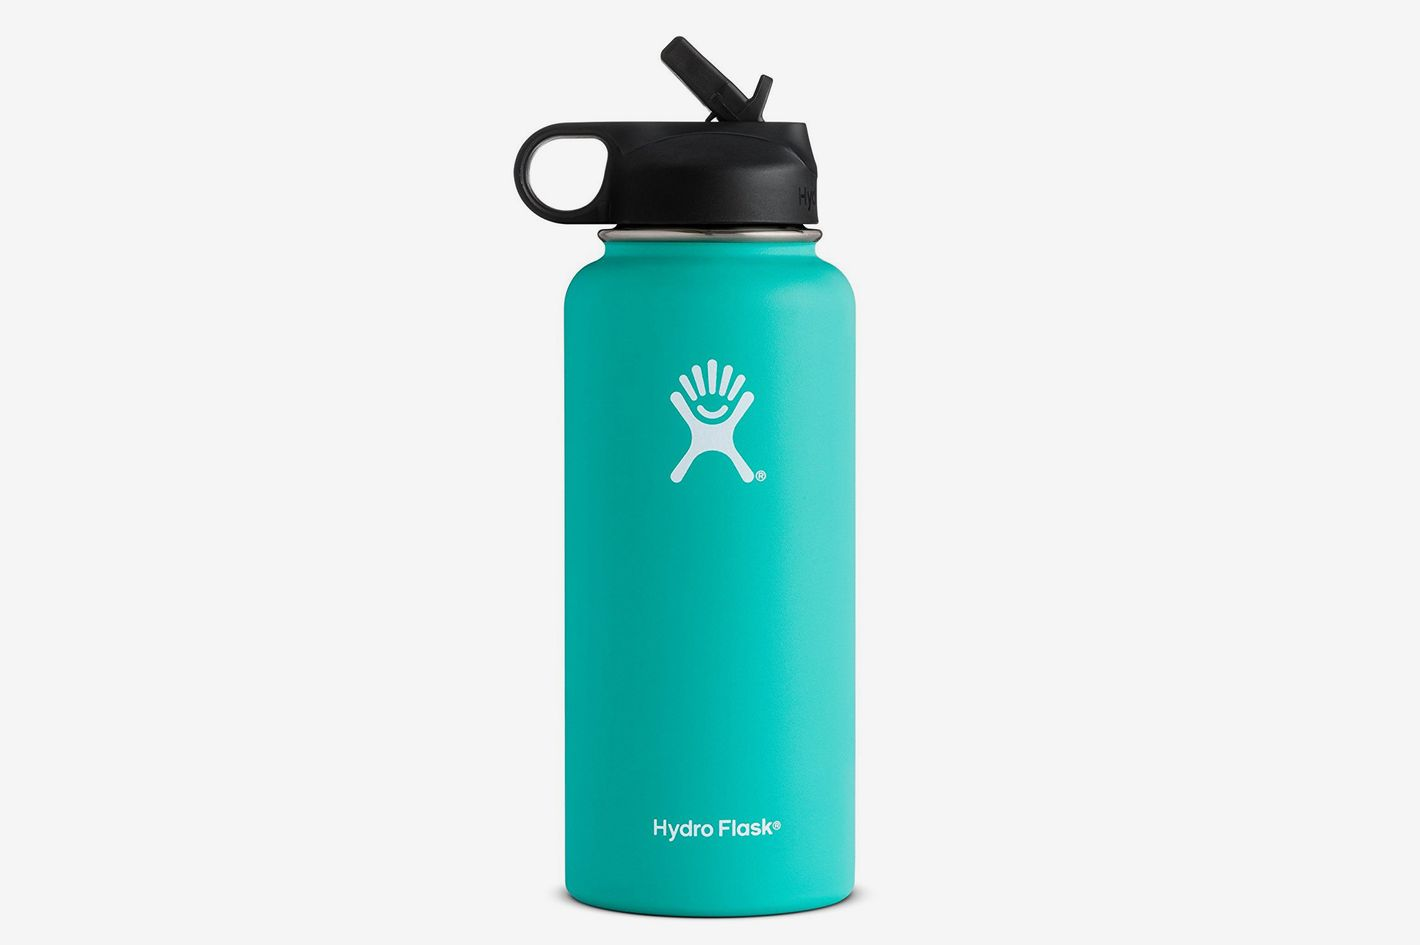 Hydro Flask Stainless Steel Sports Water Bottle, Wide Mouth With BPA Free Straw Lid